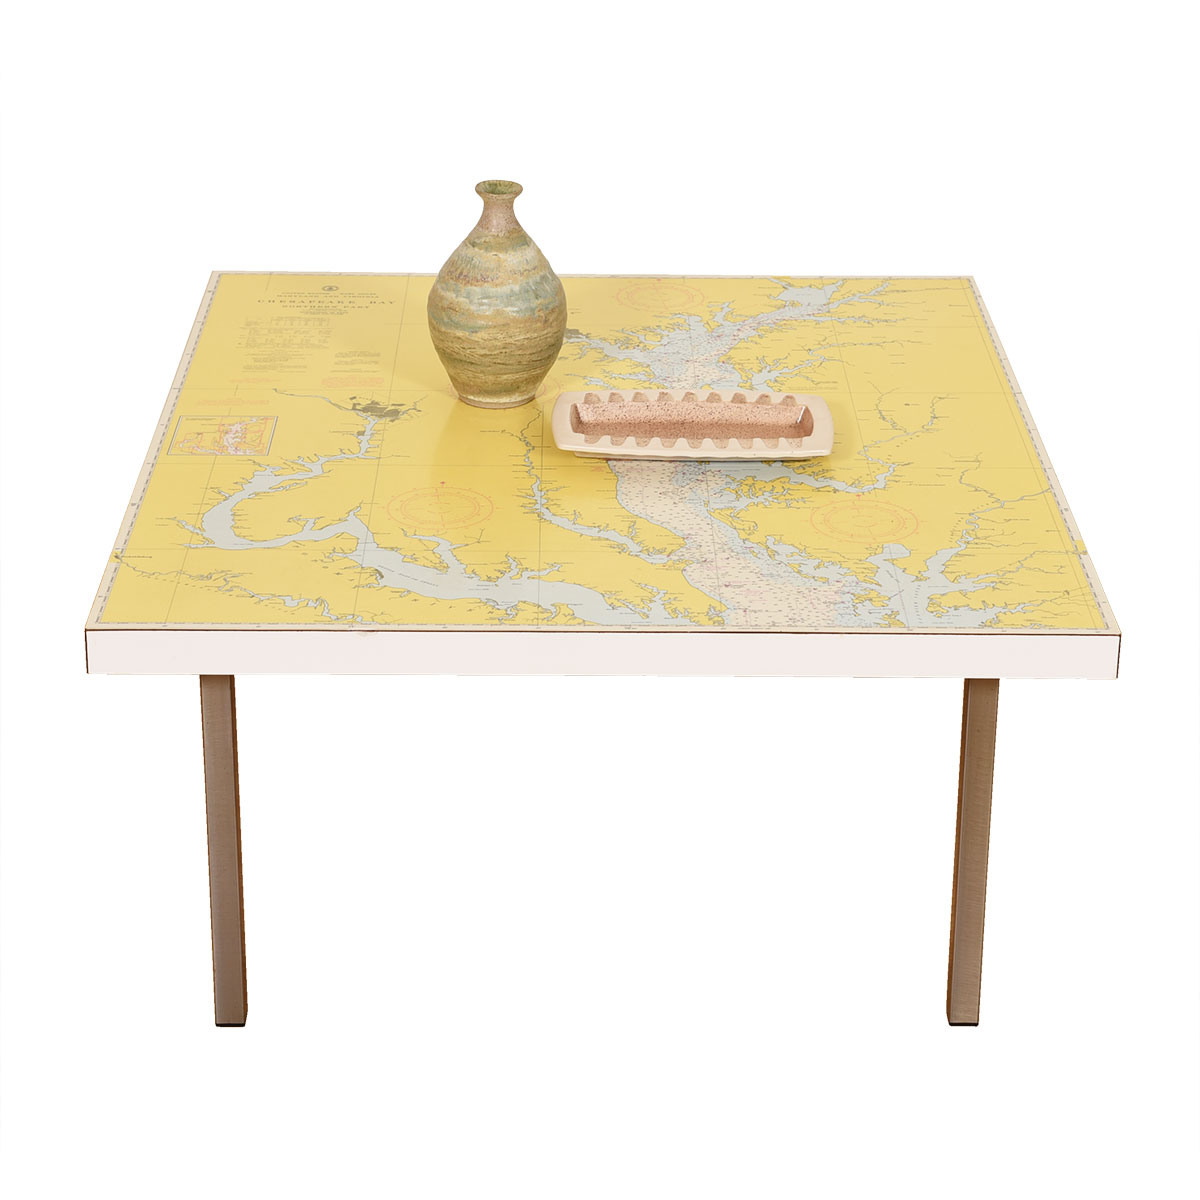 Vintage 'Map' Top Square Coffee Table Featuring the Chesapeake Bay